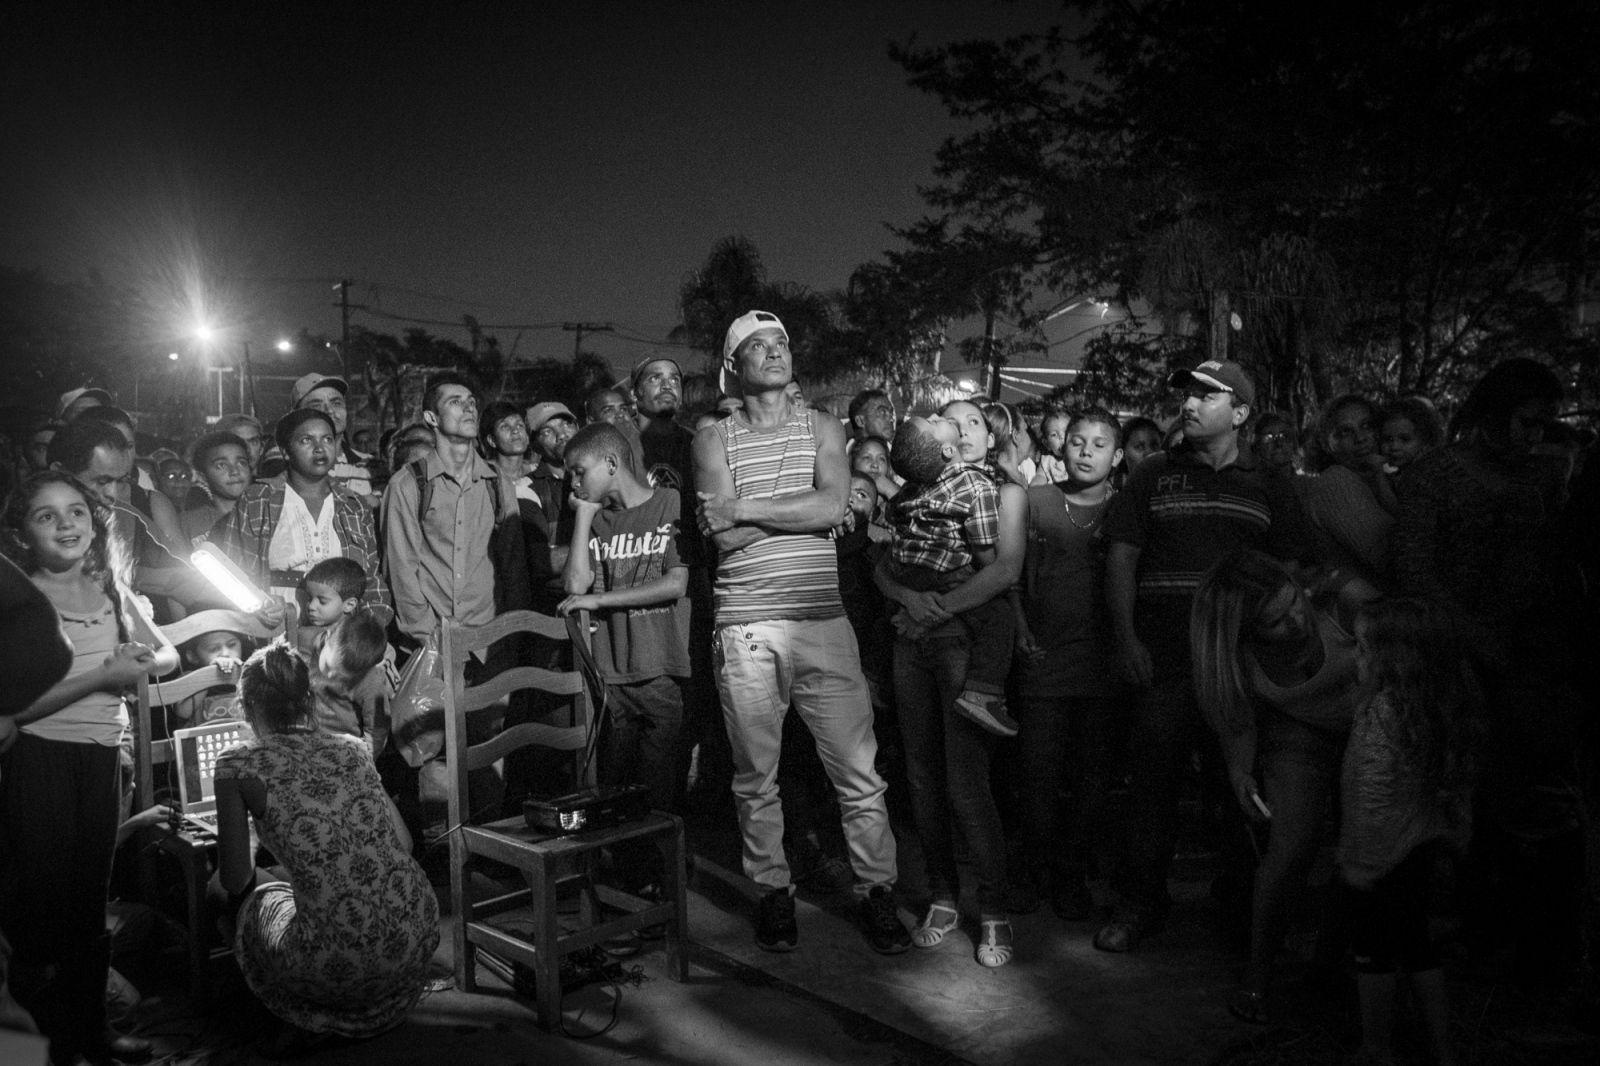 Habitants of Copa do Povo (People's Cup) Camp, Itaquera, São Paulo, listen to the leaders of the Movement of Workers Without Ceiling (MTST)  while they explain the negociations with the Brazilian Government. Every night they gather for debates and to coordinate the efforts to run the camp. The Copa do Povo Camp, is just a few miles from the Arena Corinthians and has 5,000 homeless workers and their families occupied area of fifteen acres. They are homeless after rents skyrocketed because of the World Cup.